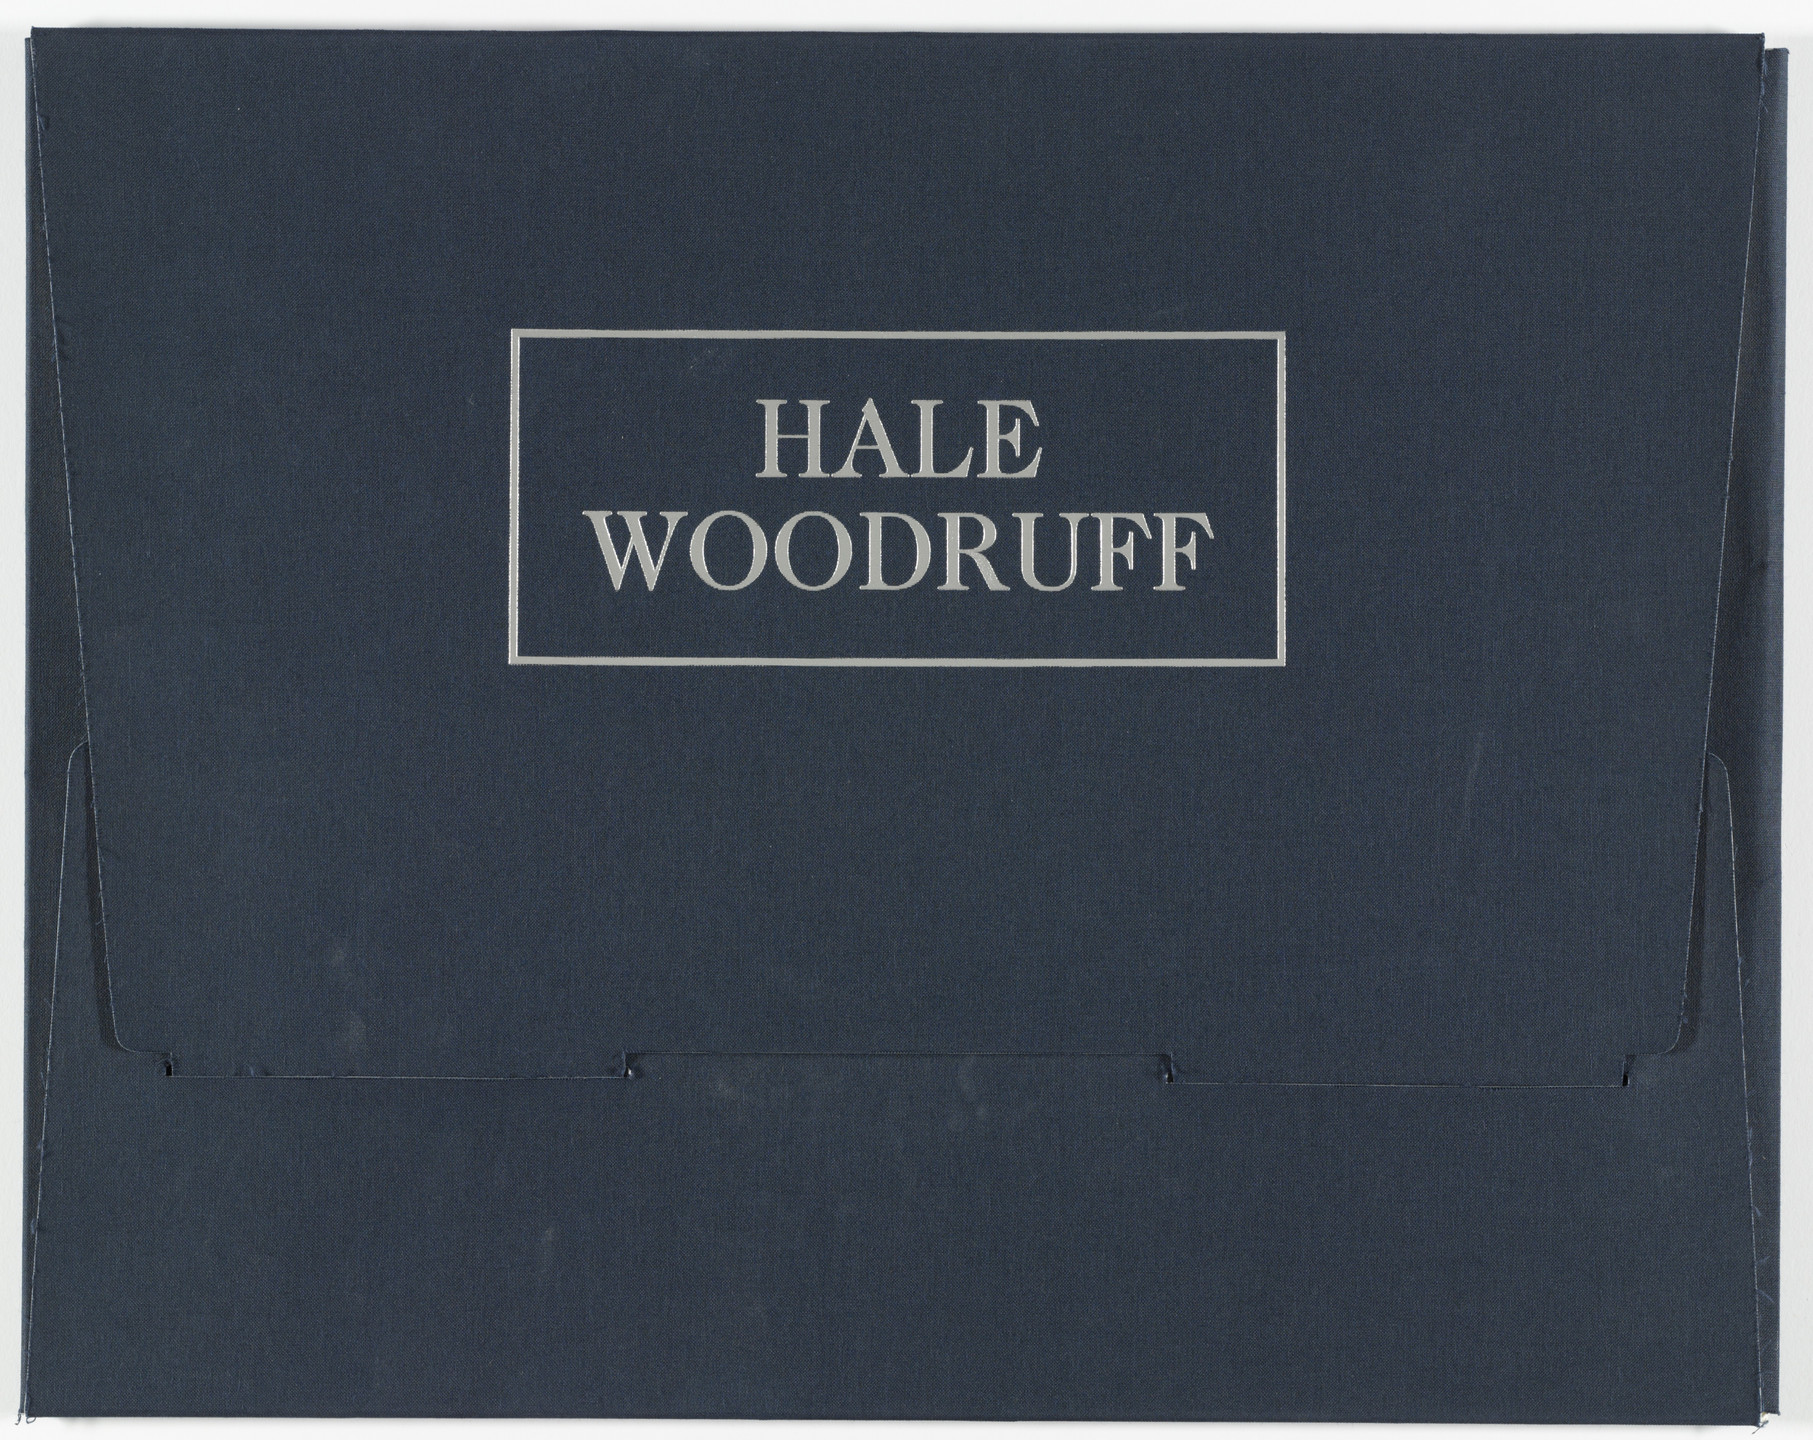 Hale Woodruff. Hale Woodruff: Selections from the Atlanta Period 1931–1946. 1931–46, published 1996